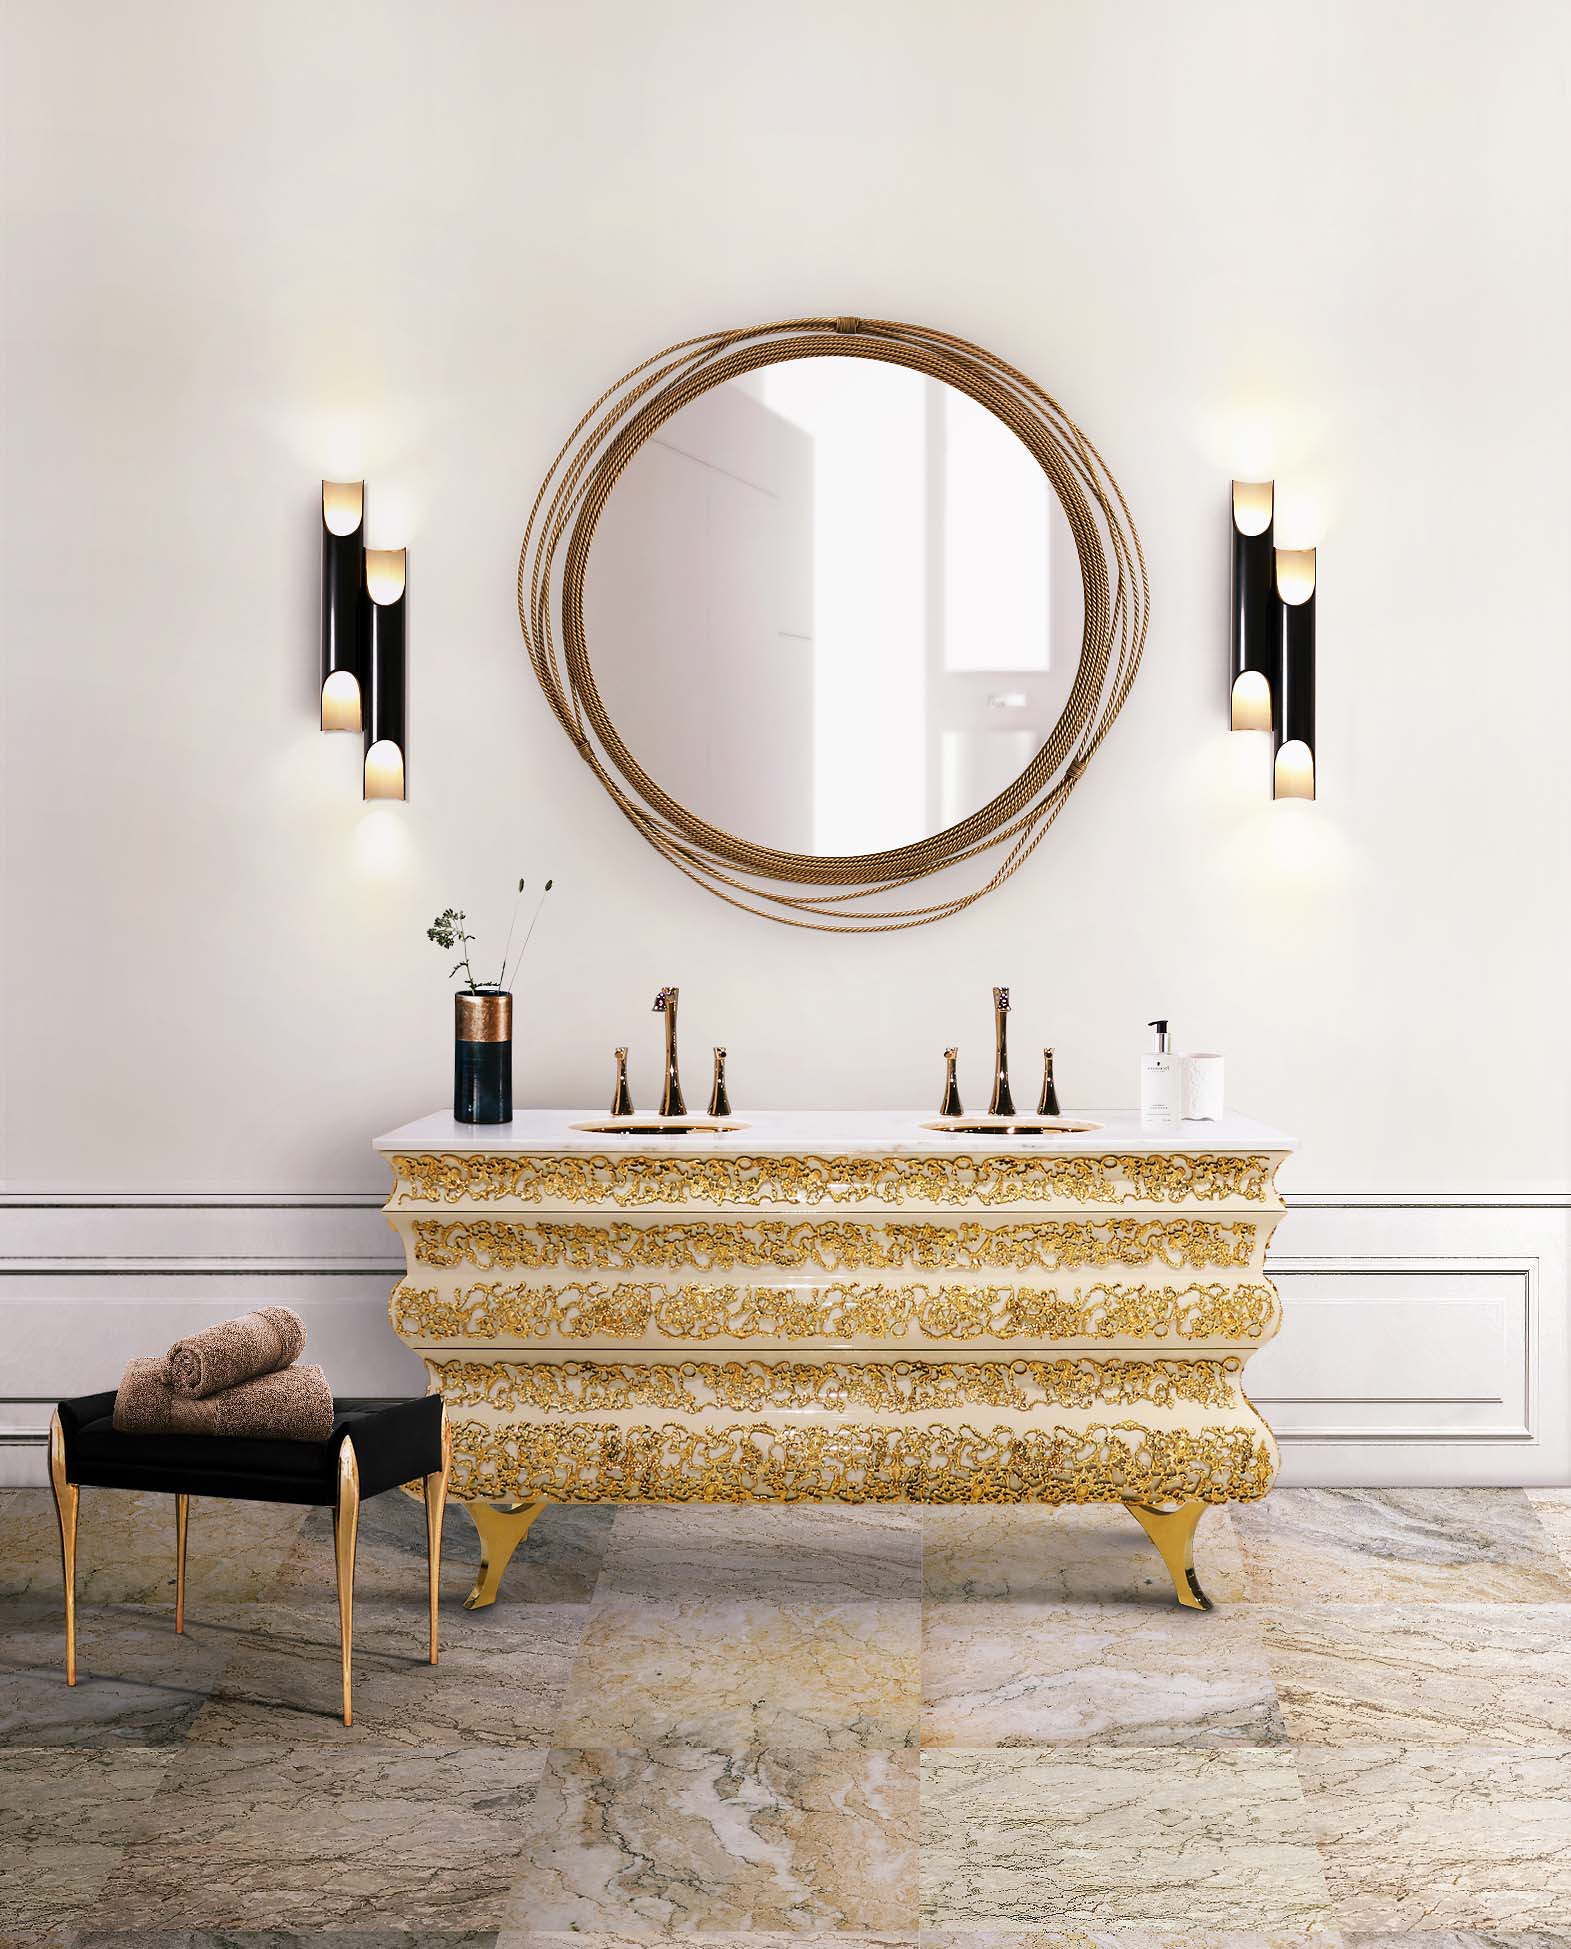 Fall in Love with These Lighting Designs for Your Luxury Bathroom (7) lighting design Fall in Love with These Lighting Designs for Your Luxury Bathroom Fall in Love with These Lighting Designs for Your Luxury Bathroom 7